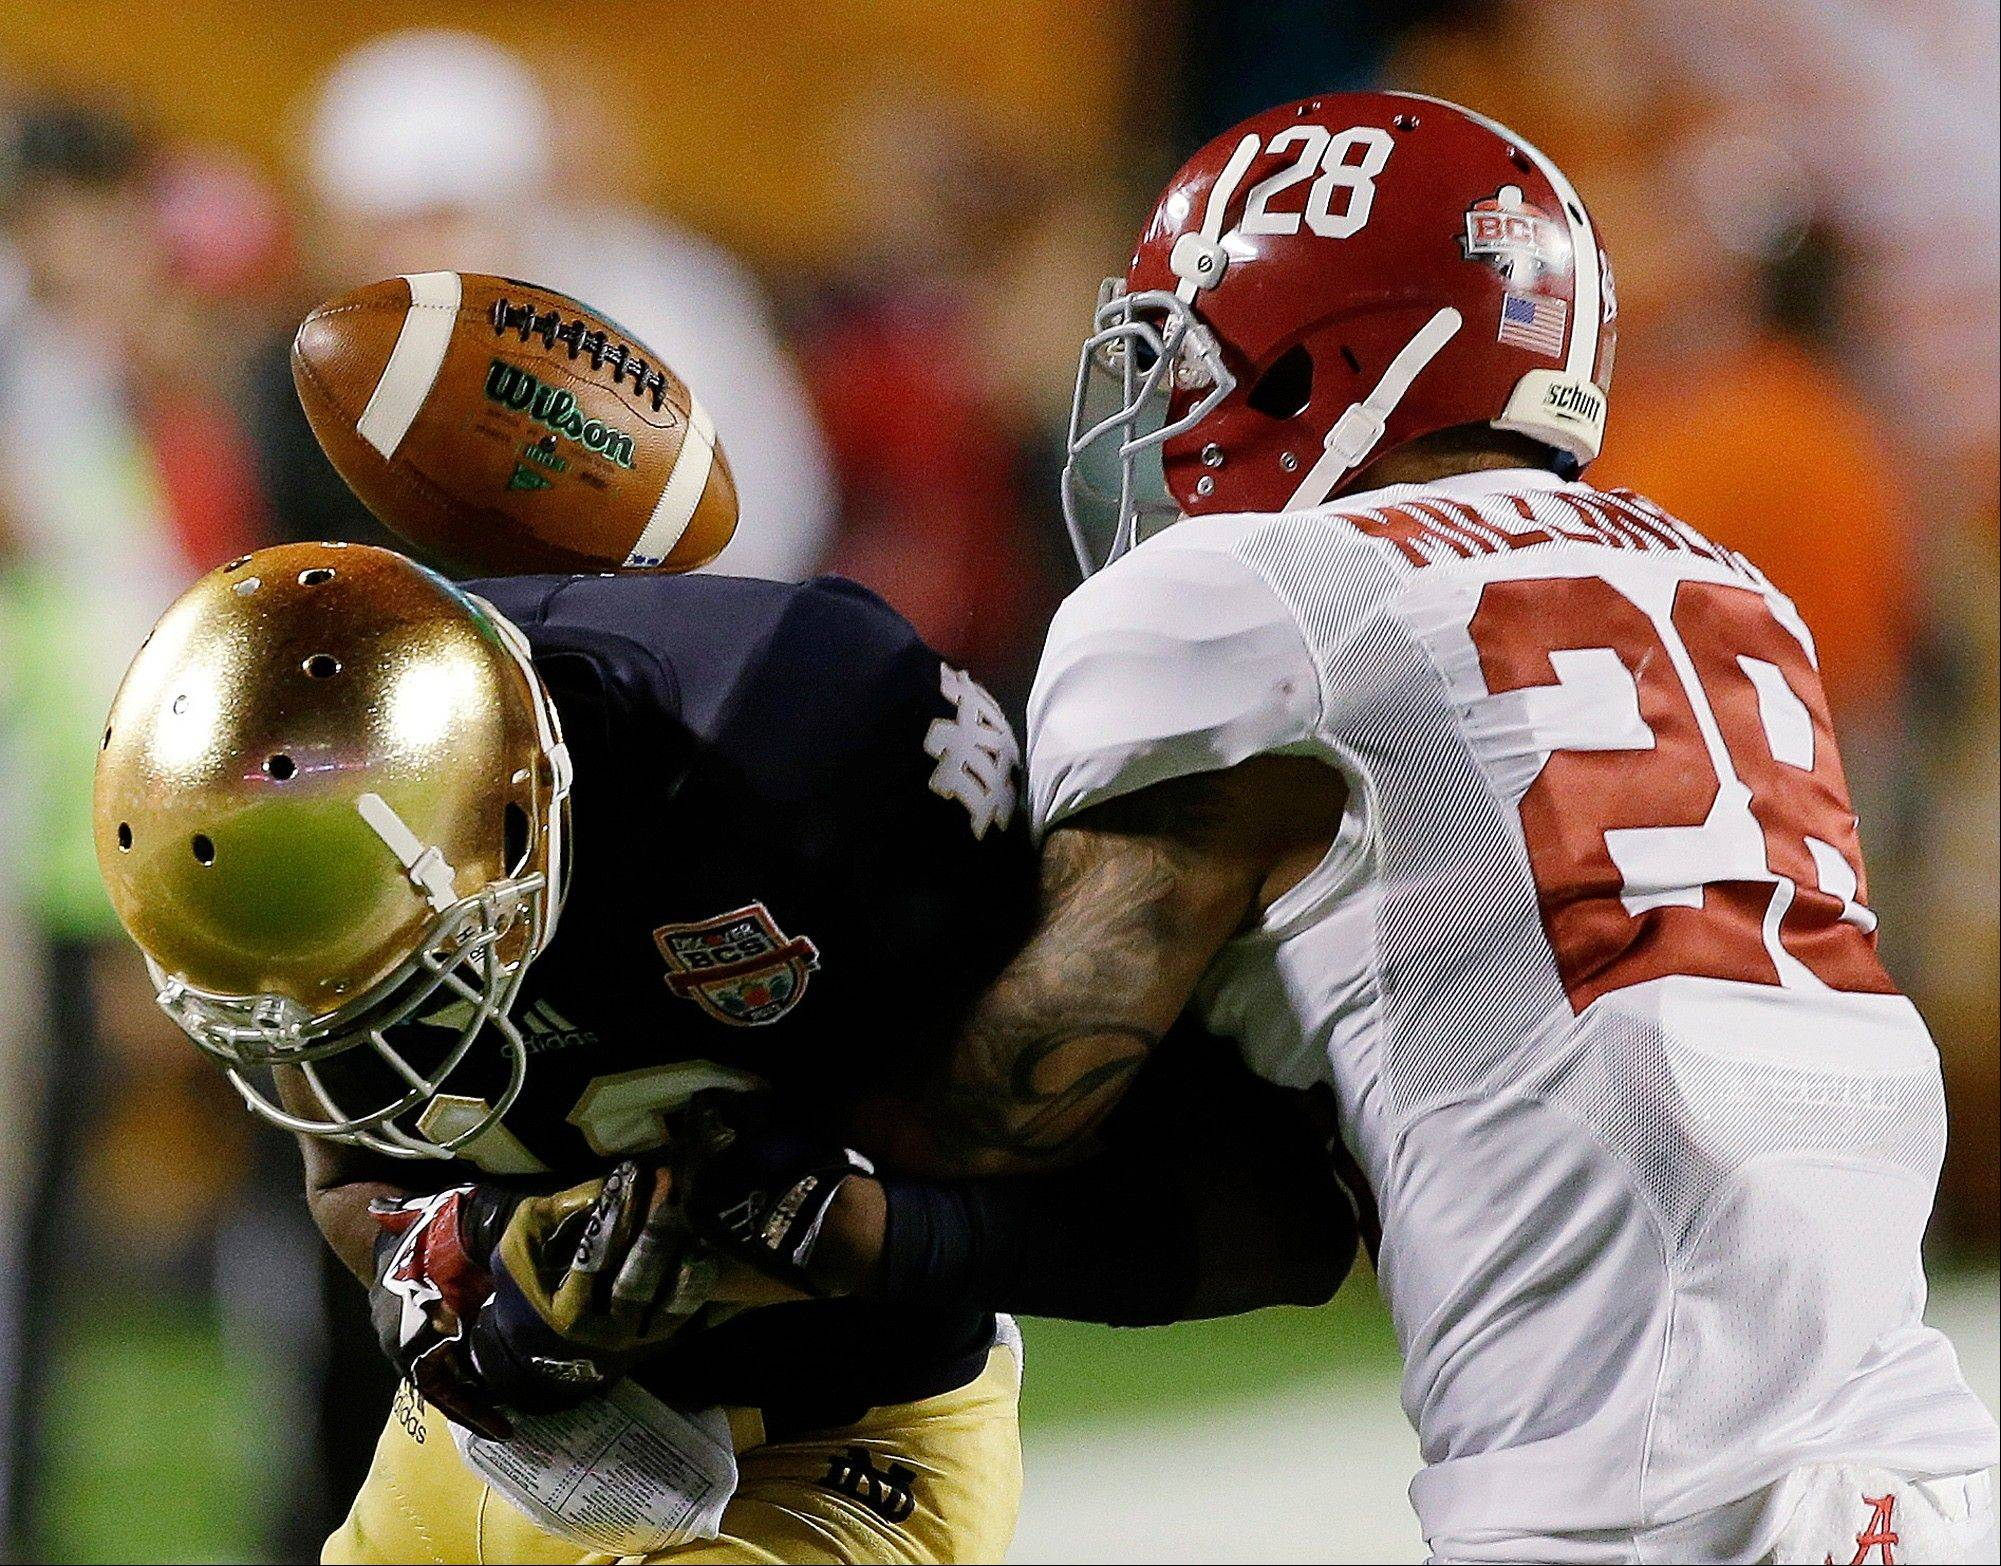 Alabama's Dee Milliner (28) breaks up a pass intended for Notre Dame's DaVaris Daniels during the first half of the BCS National Championship college football game Monday, Jan. 7, 2013, in Miami.